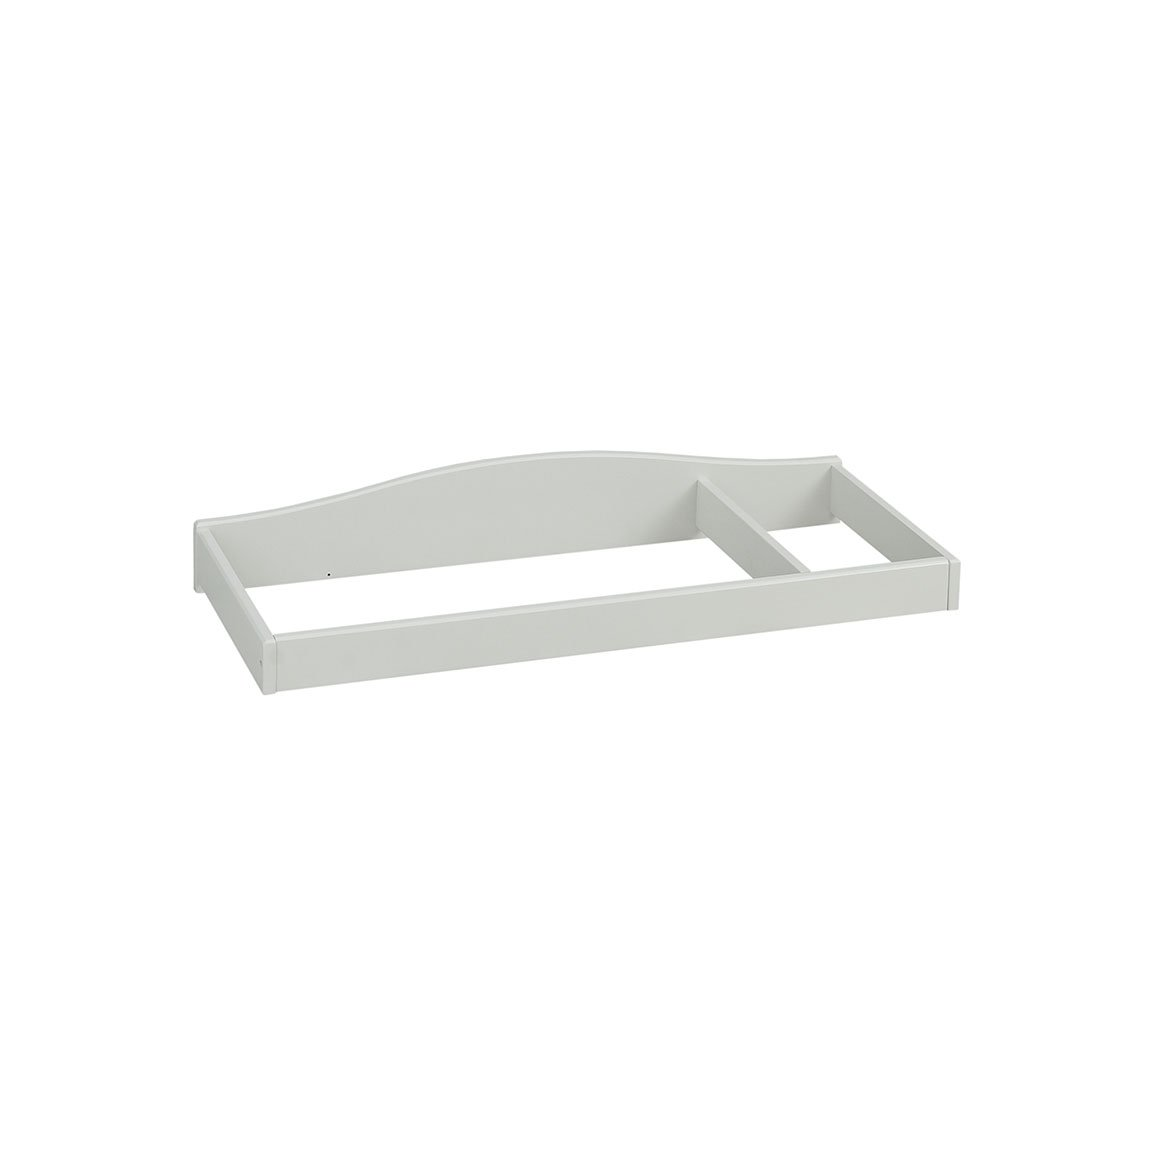 Baby Cache Natural Hardwood Changing Station Table Topper Montana Collection Kiln-dried Hand-Crafted Construction Glazed White